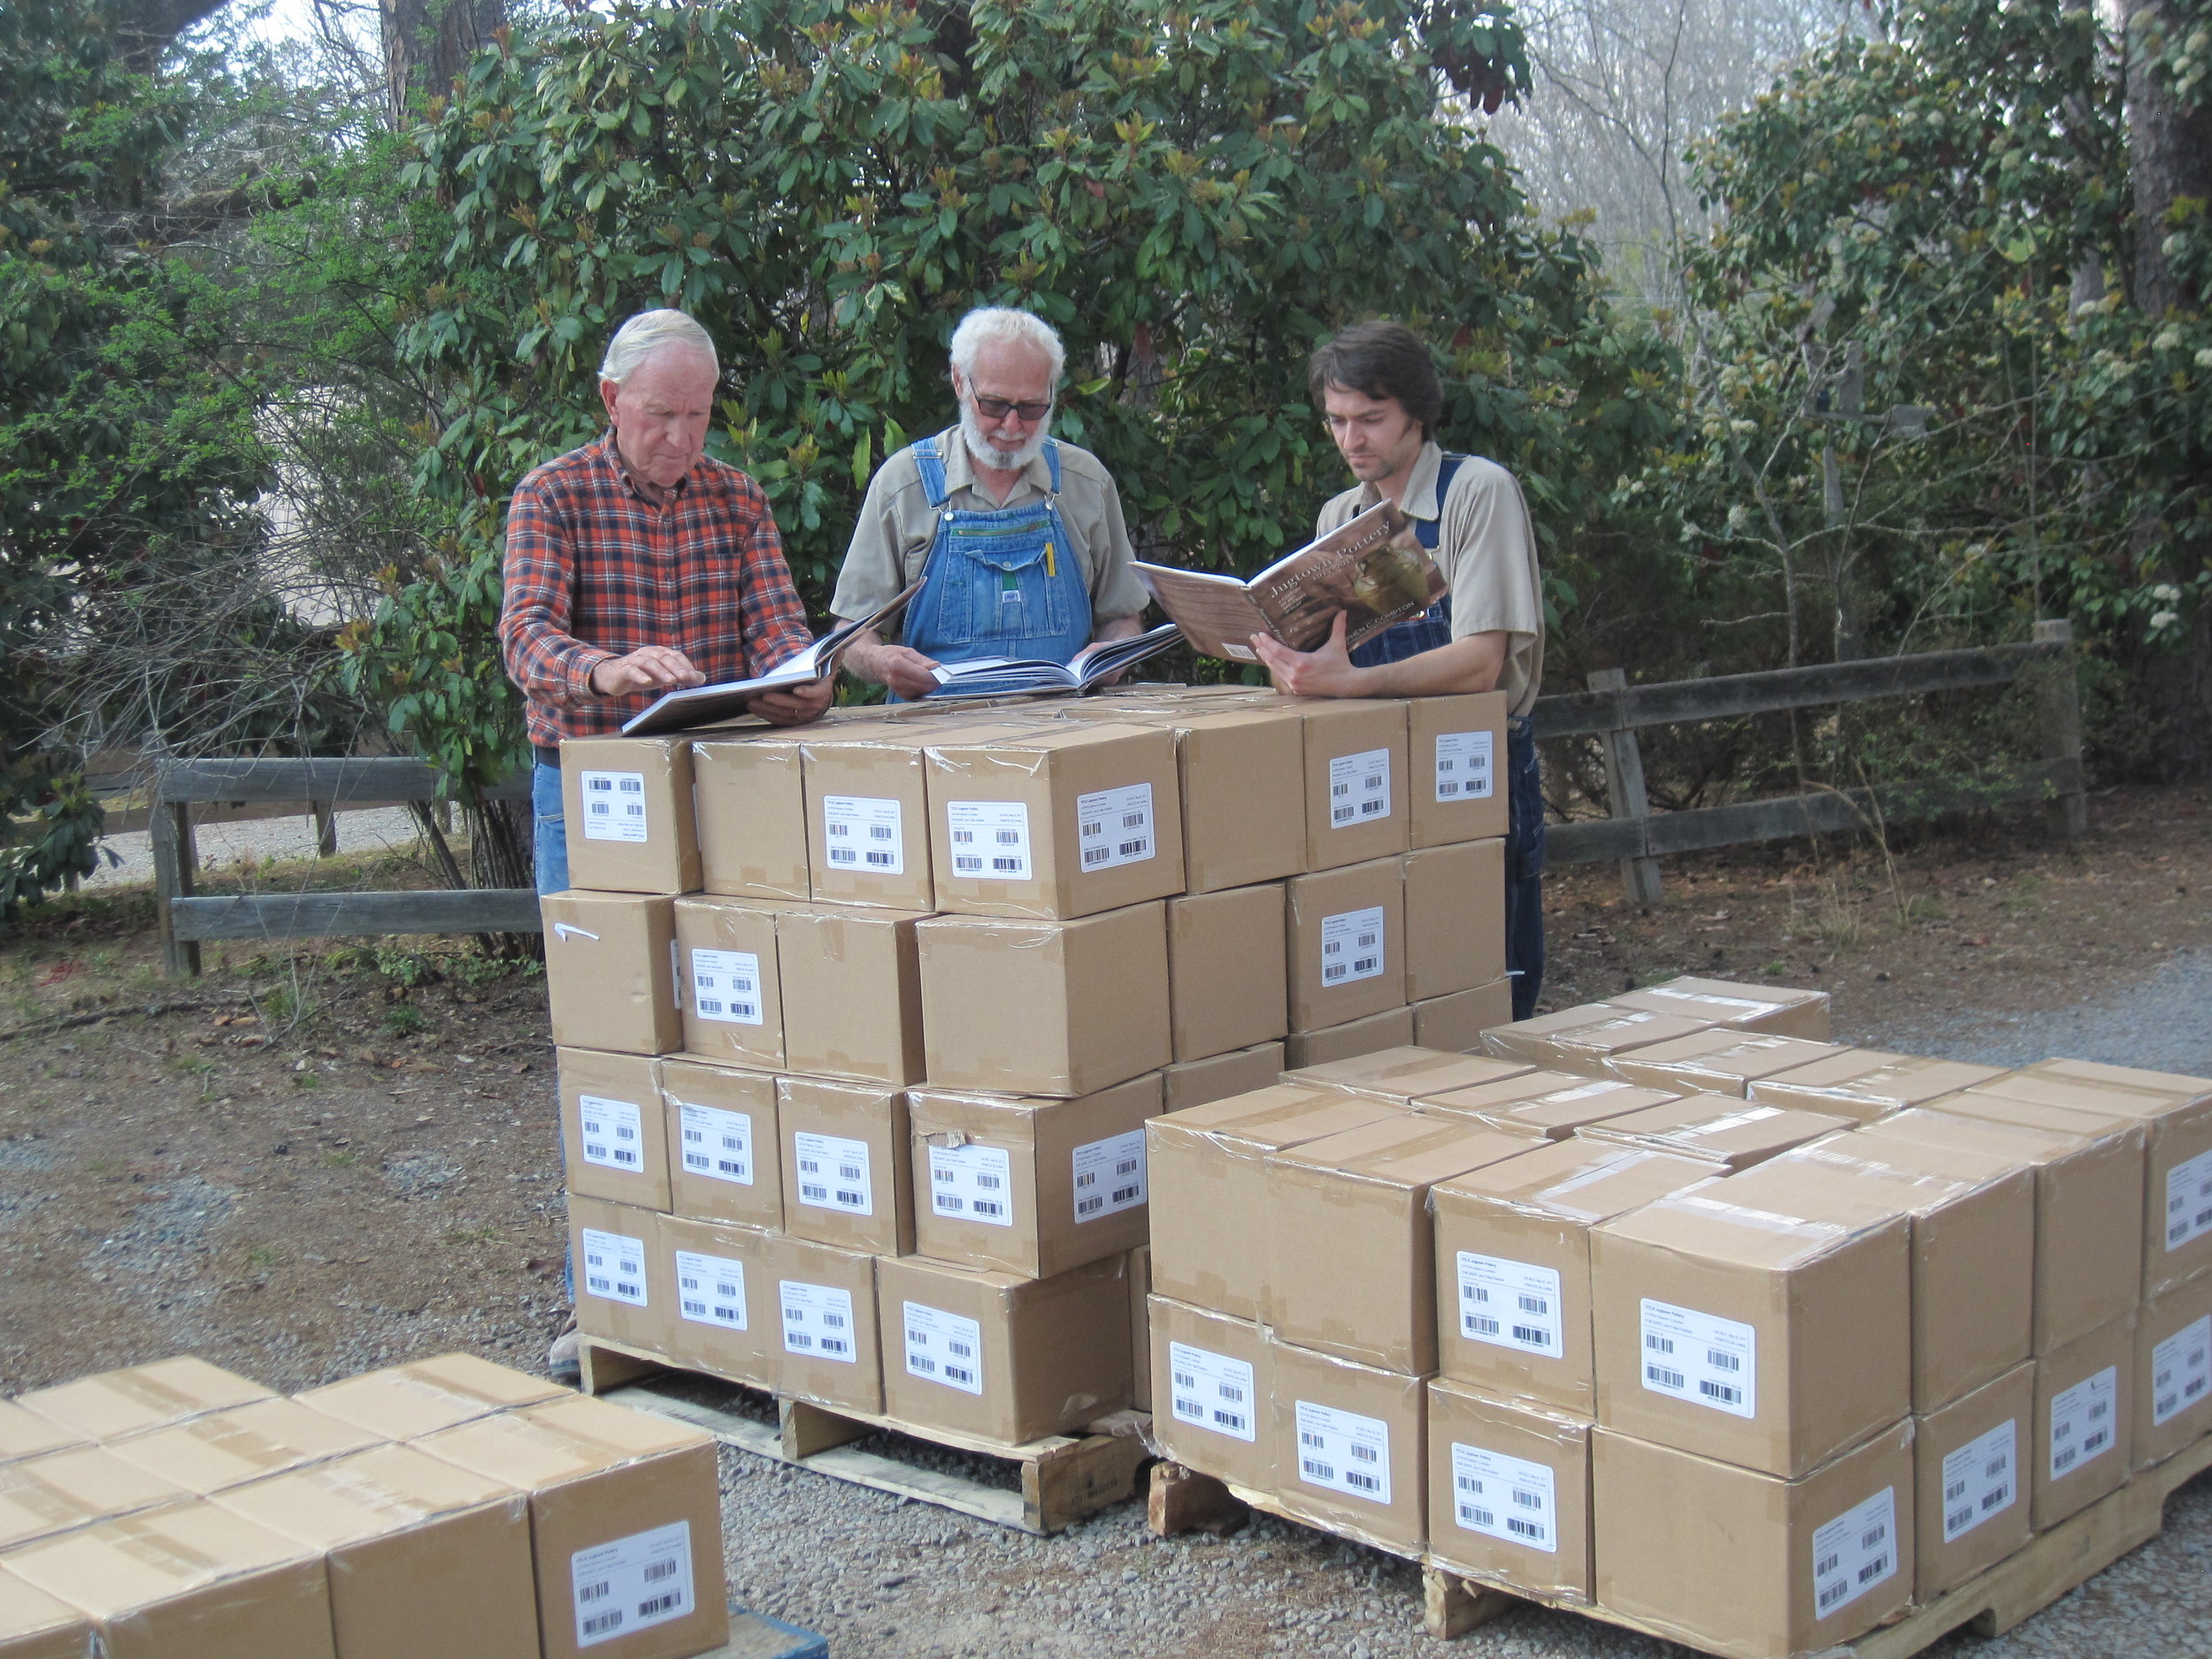 Bobby, Vernon and Travis looking at the new books immediately after delivery - they look great!